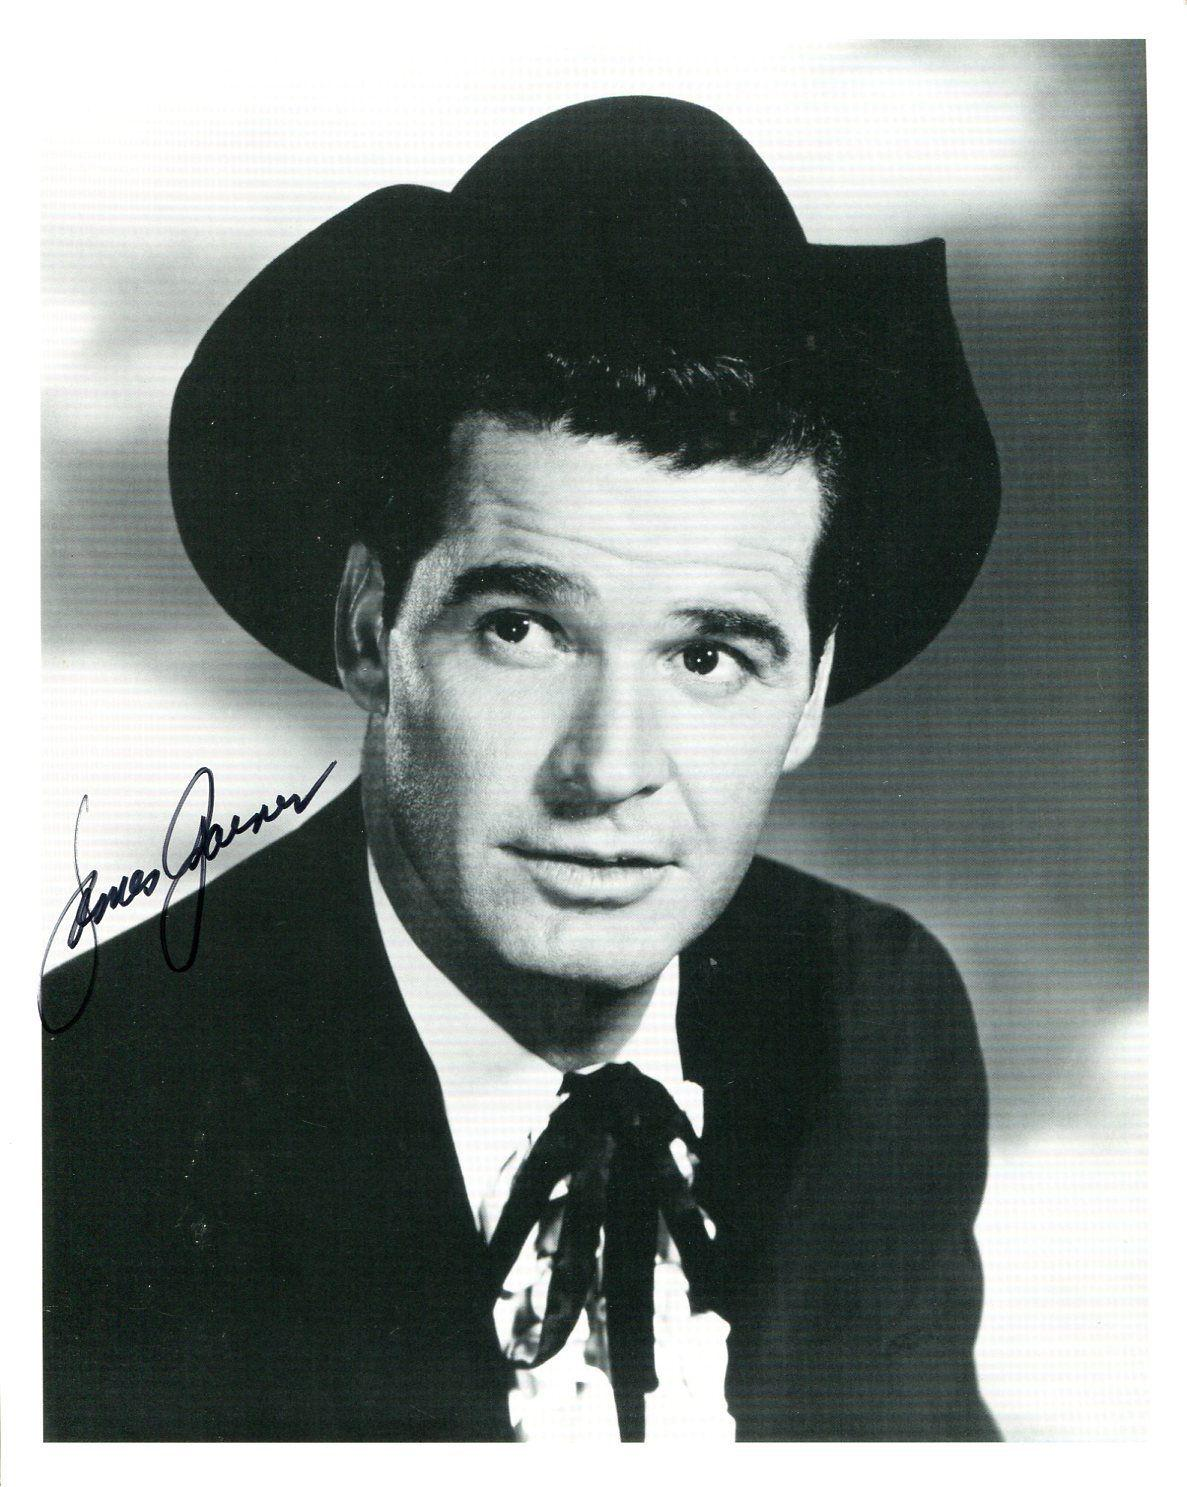 James Garner Maverick Rockford Files The Great Escape Signed Autograph Photo